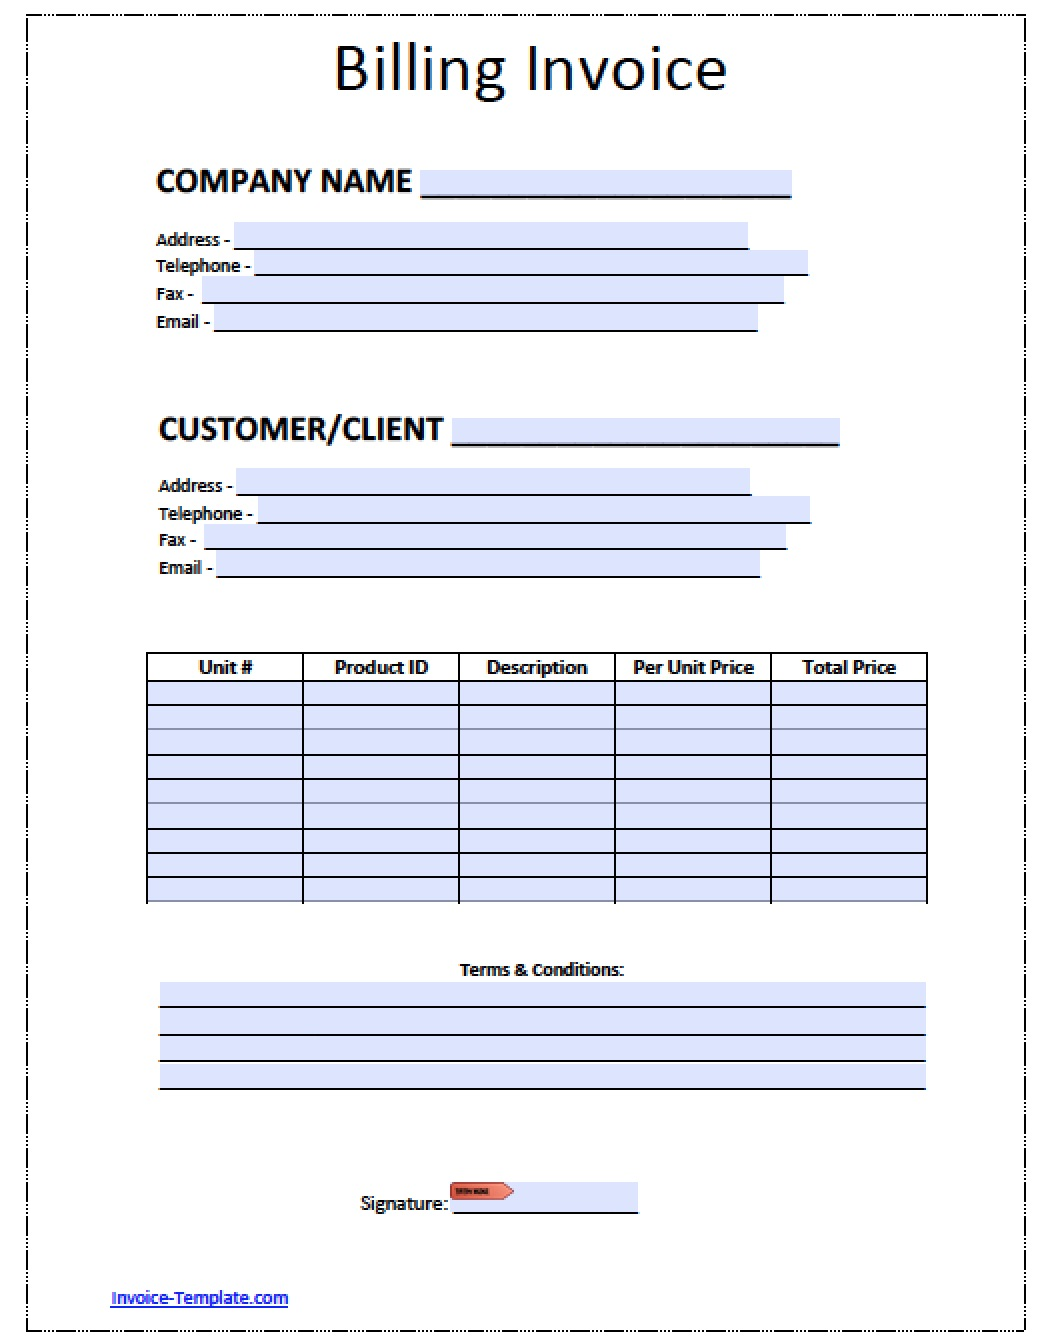 Free Billing Invoice Template Excel PDF Word Doc - Customer invoice template